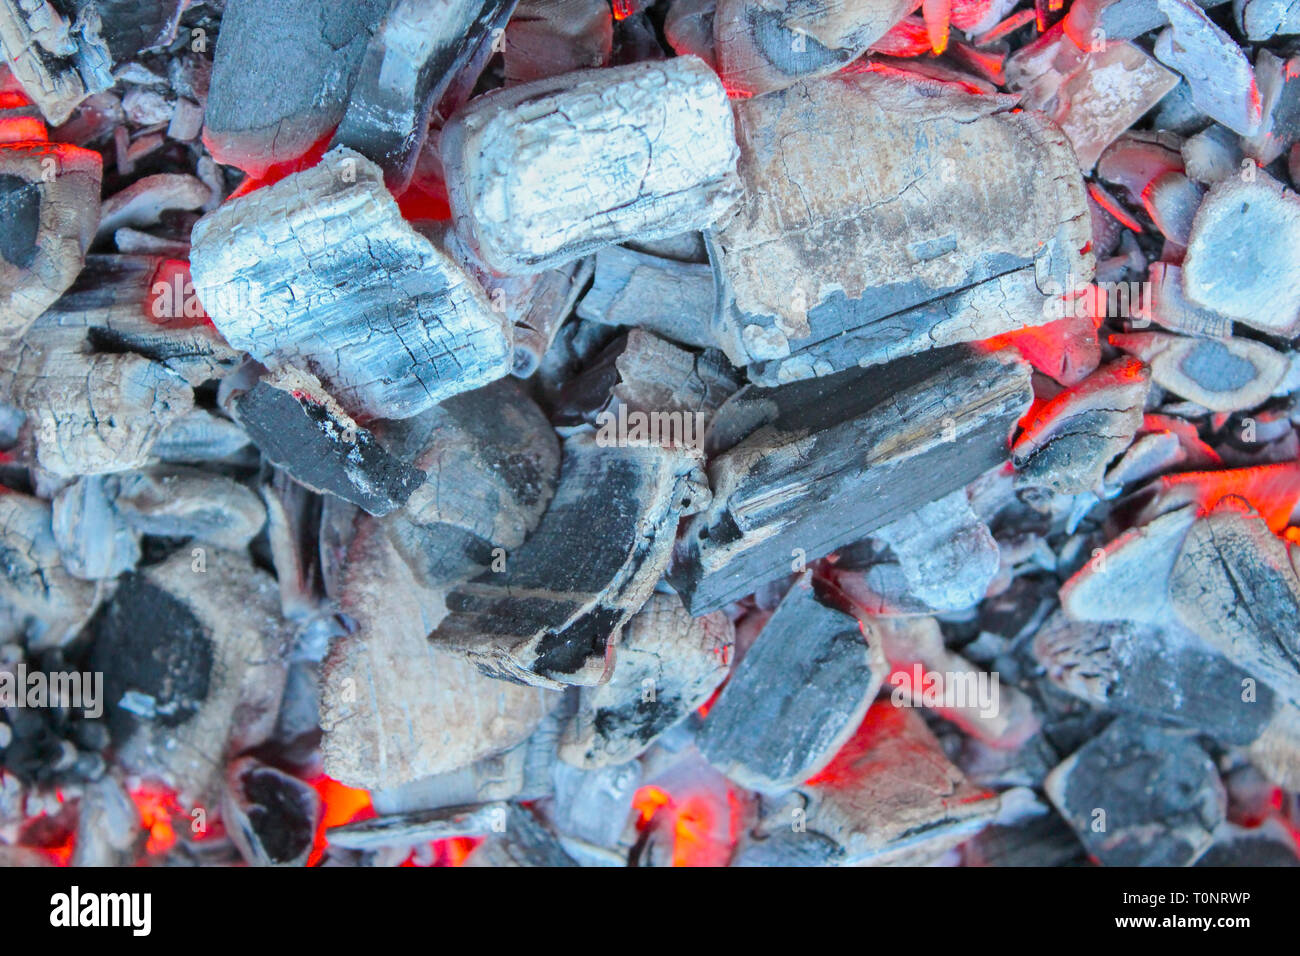 The dying embers in the fire close-up as background - Stock Image